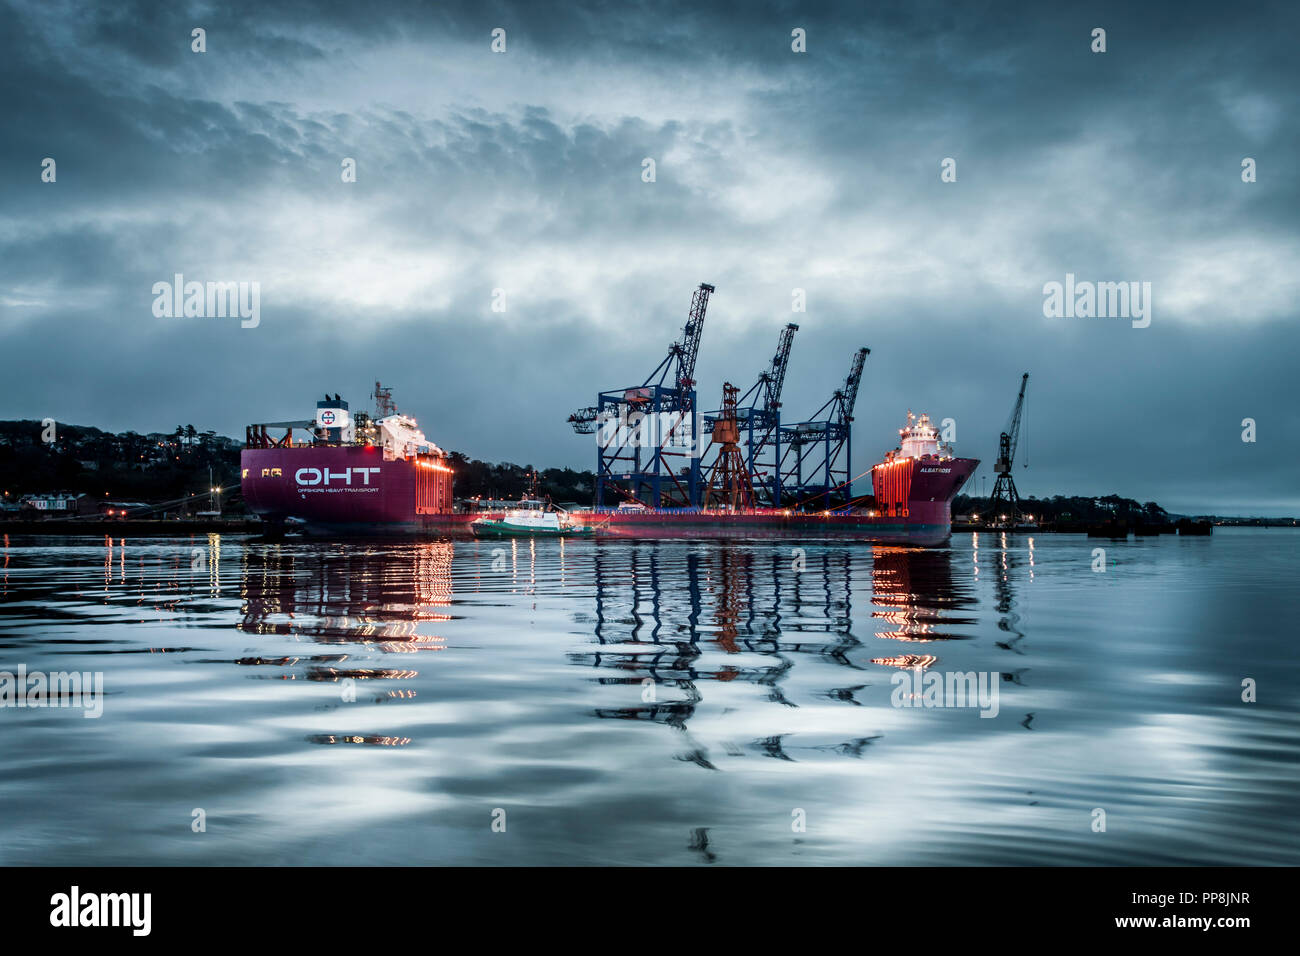 Rushbrooke, Cork, Ireland. 19th February, 2017. The semi-submersible heavy lift vessel Albratross at Cork Dockyard waiting to be loaded with three cra - Stock Image